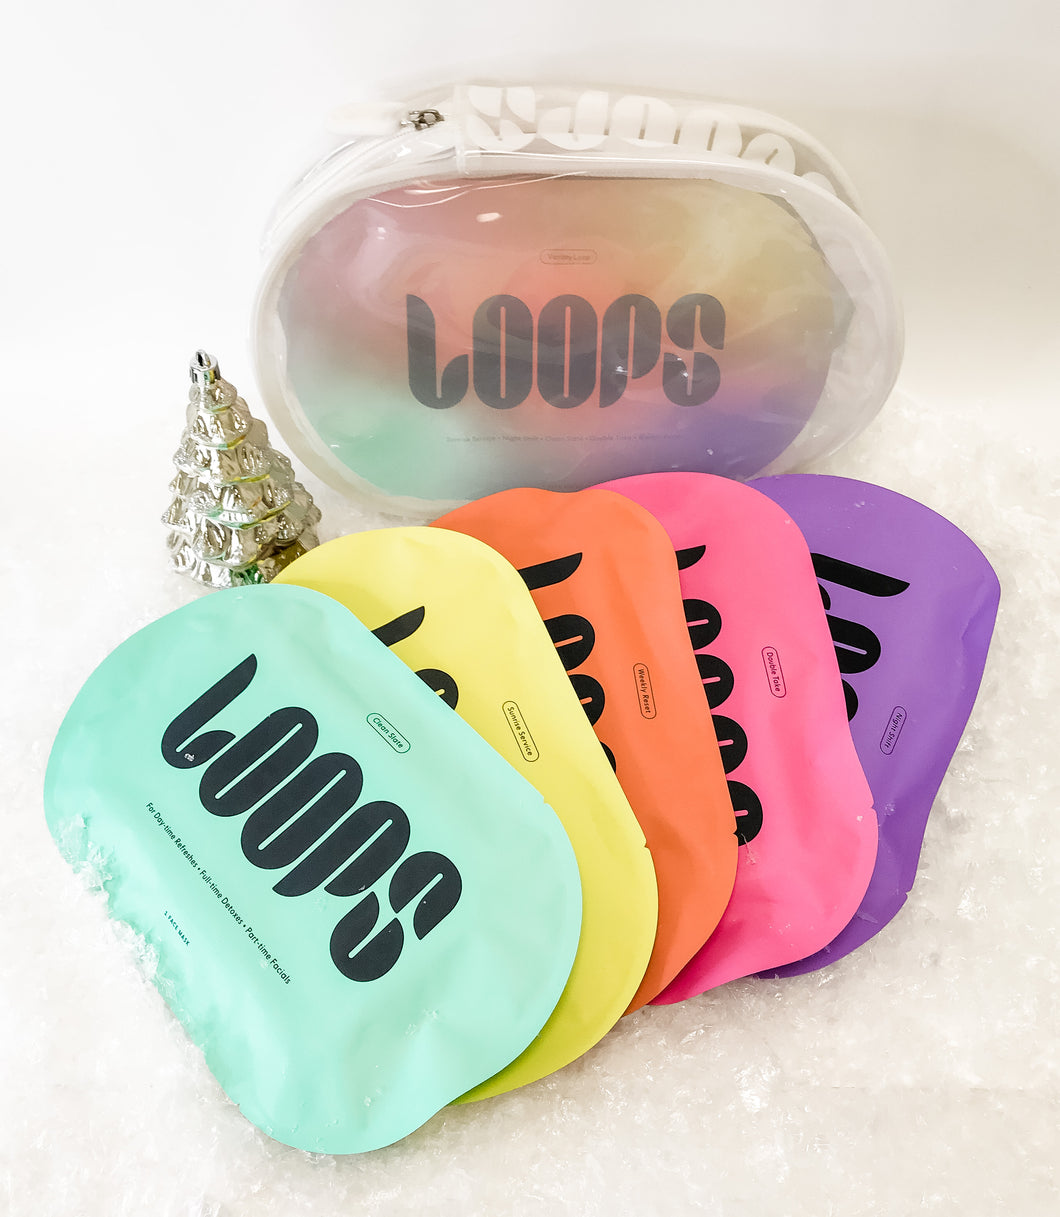 Loops Hydrogel Face Mask Set - Variety Loop